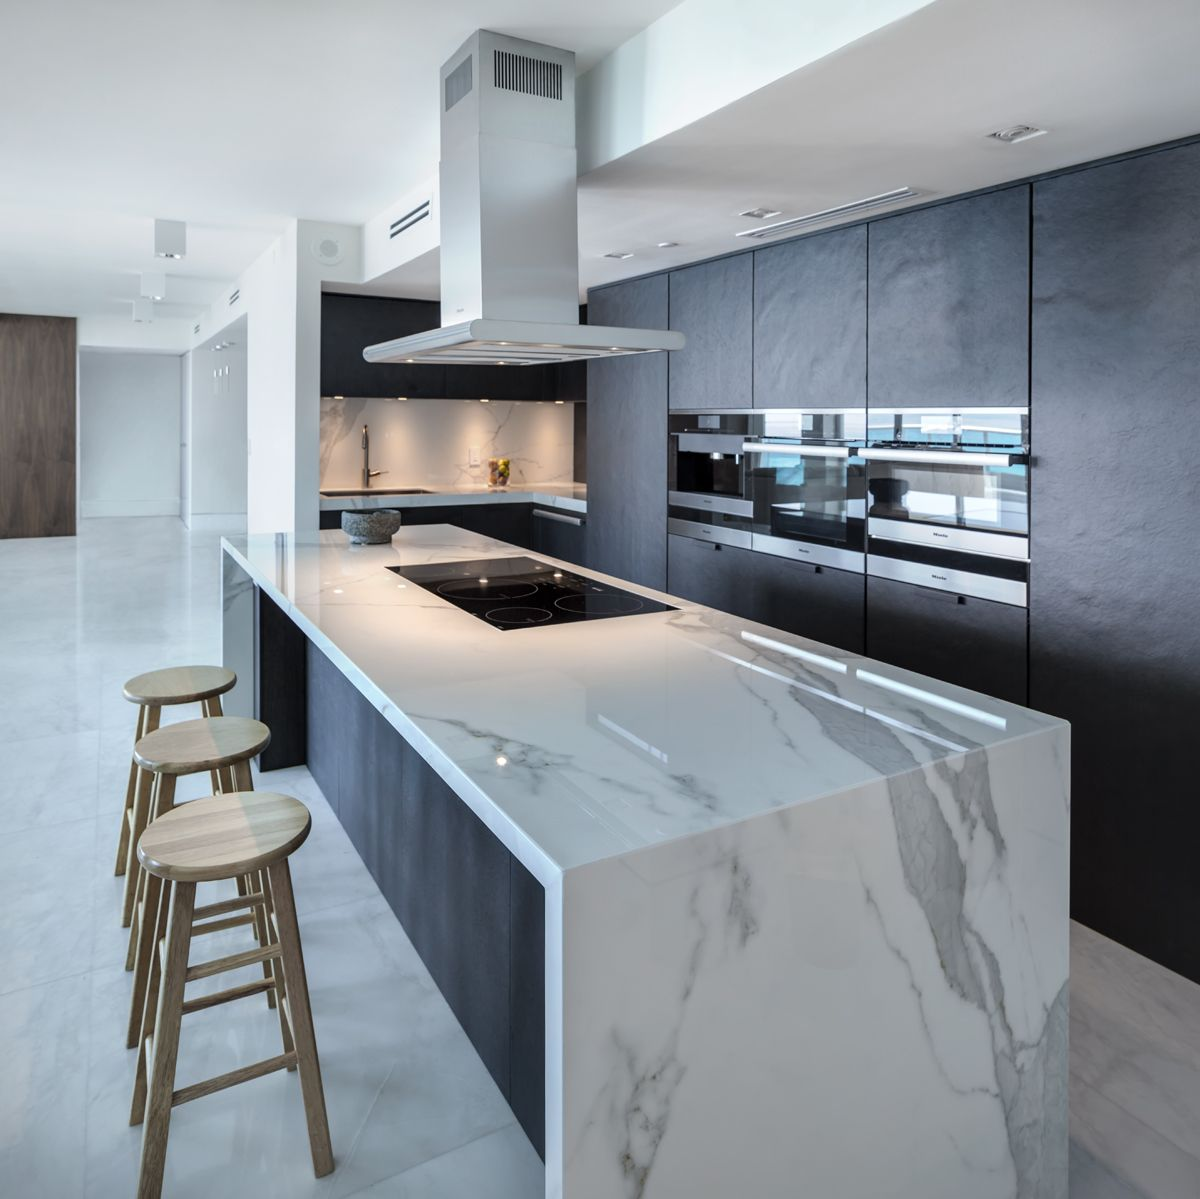 Piccola Cucina Miami Beach Neolith The Main Material In A Luxurious Apartment In Miami Beach